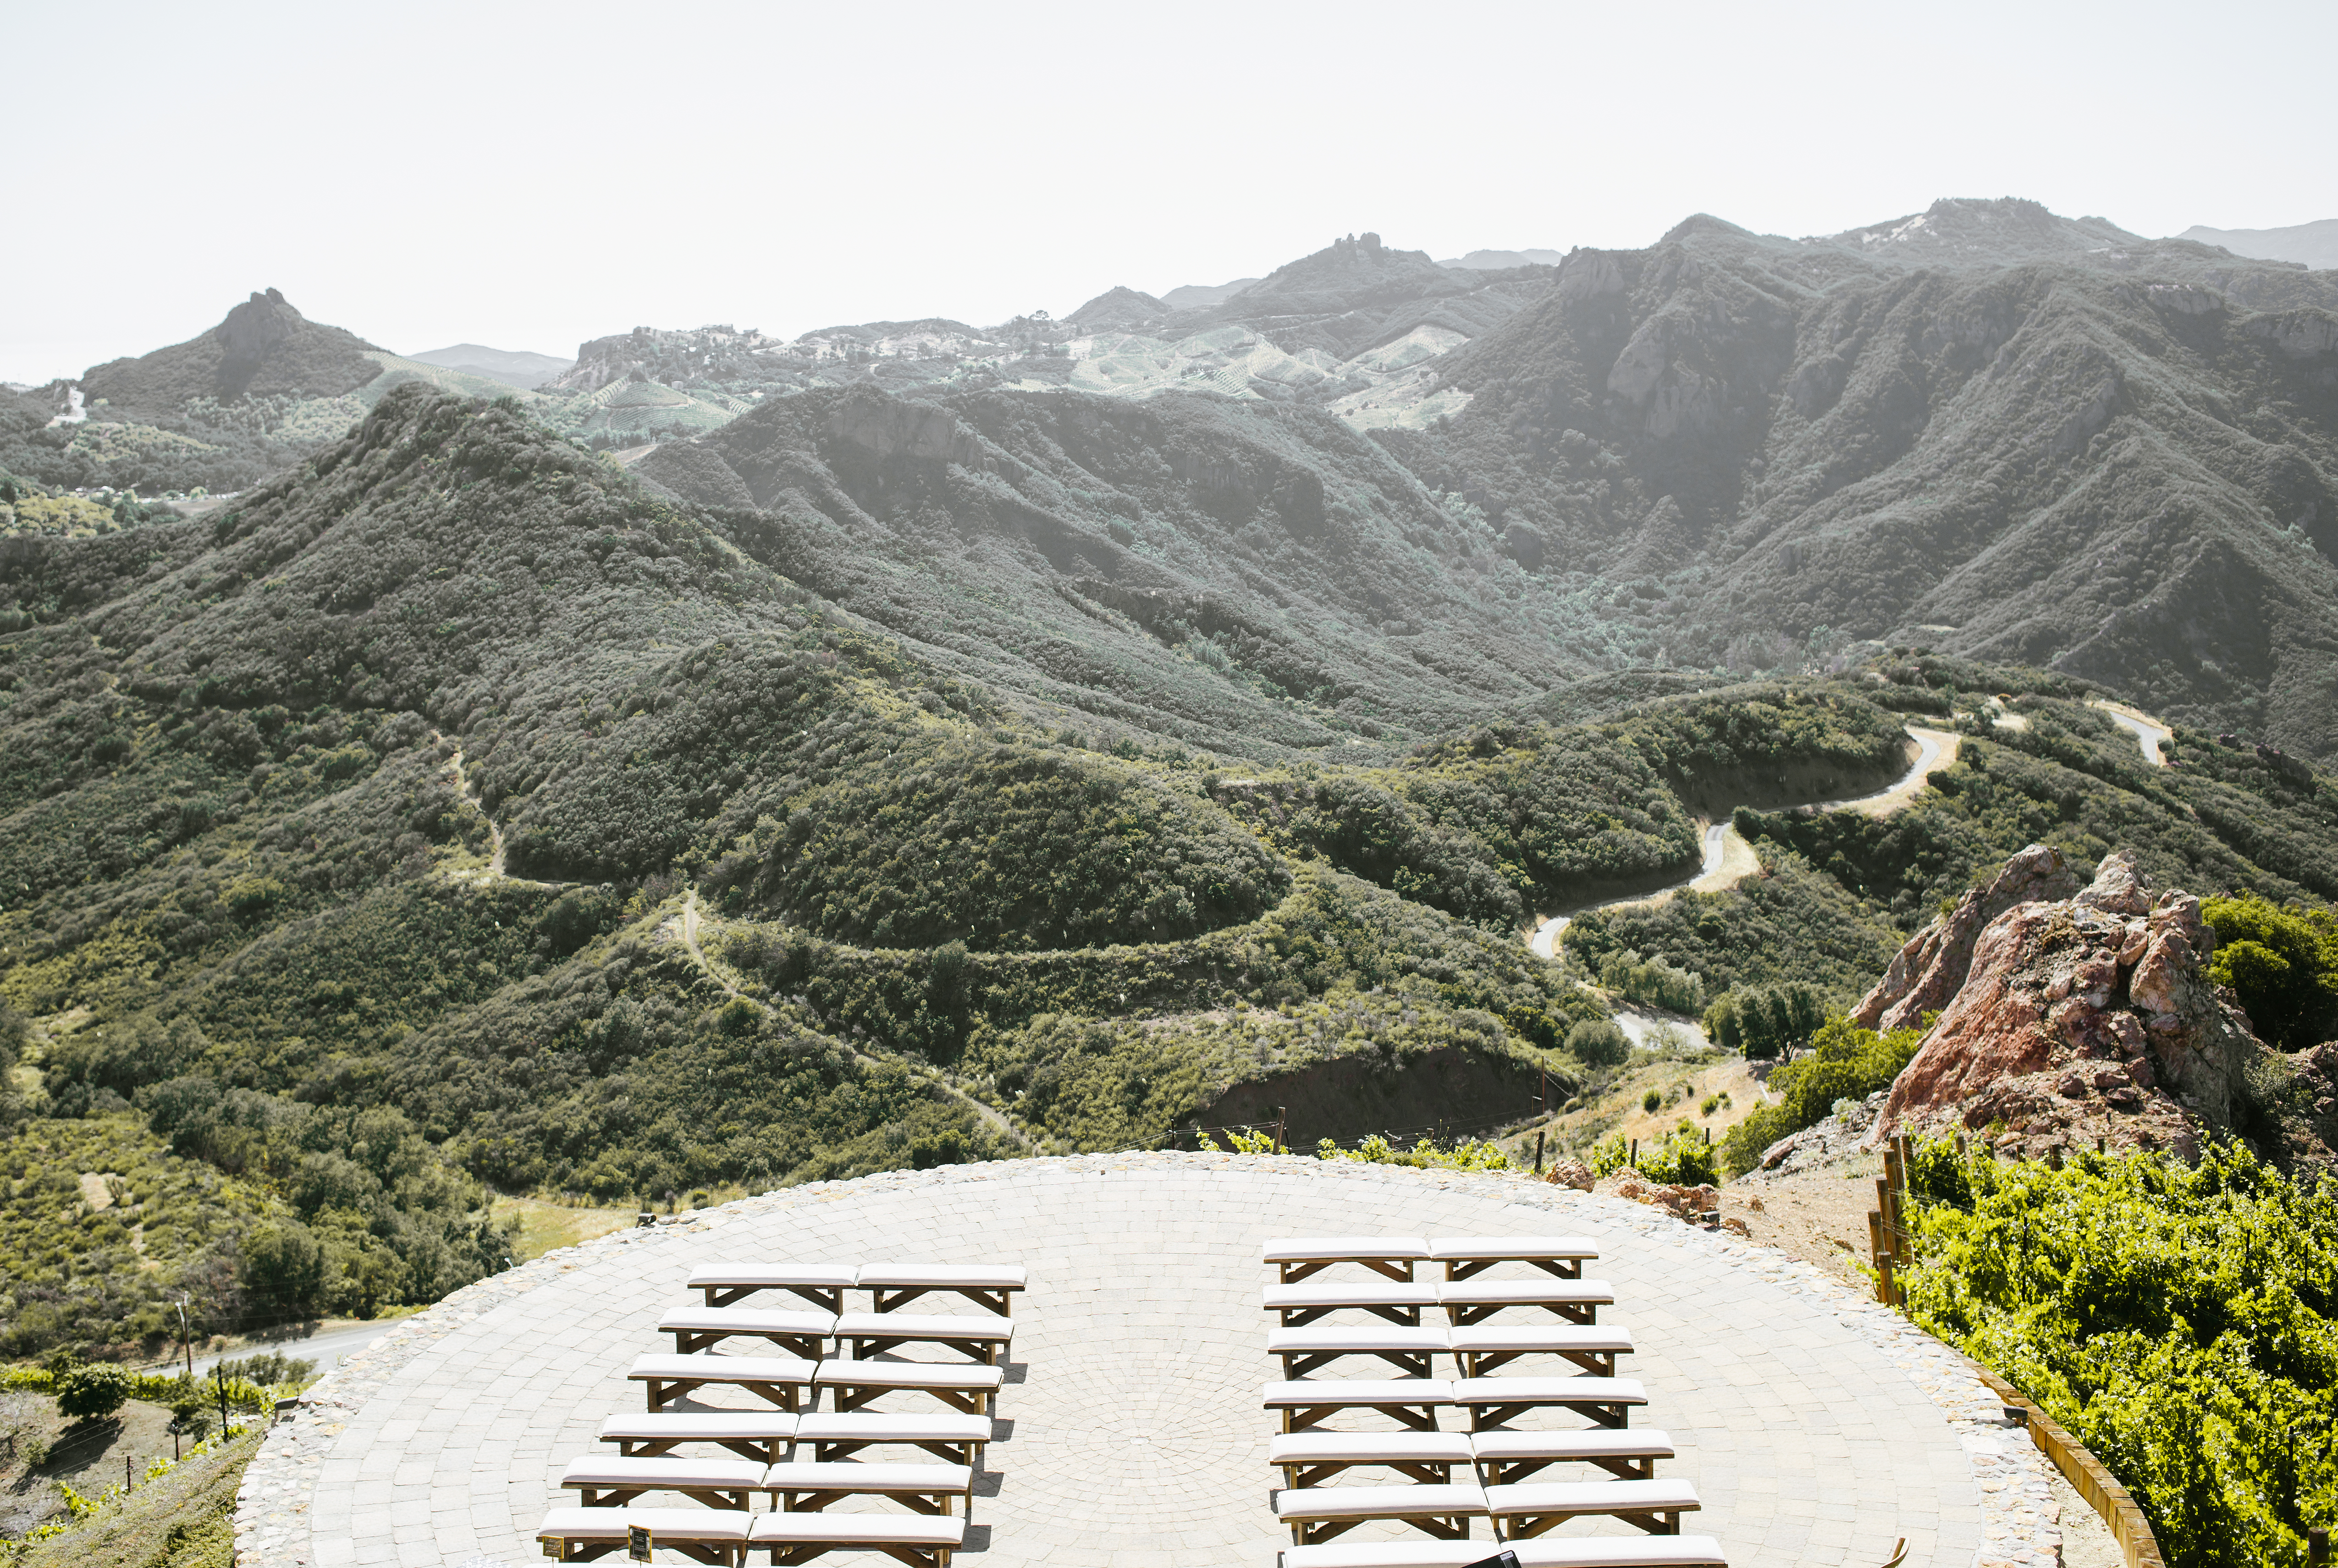 Malibu Rocky Oaks Wedding.Malibu Rocky Oaks Wedding Urban Palate Boutique Catering Los